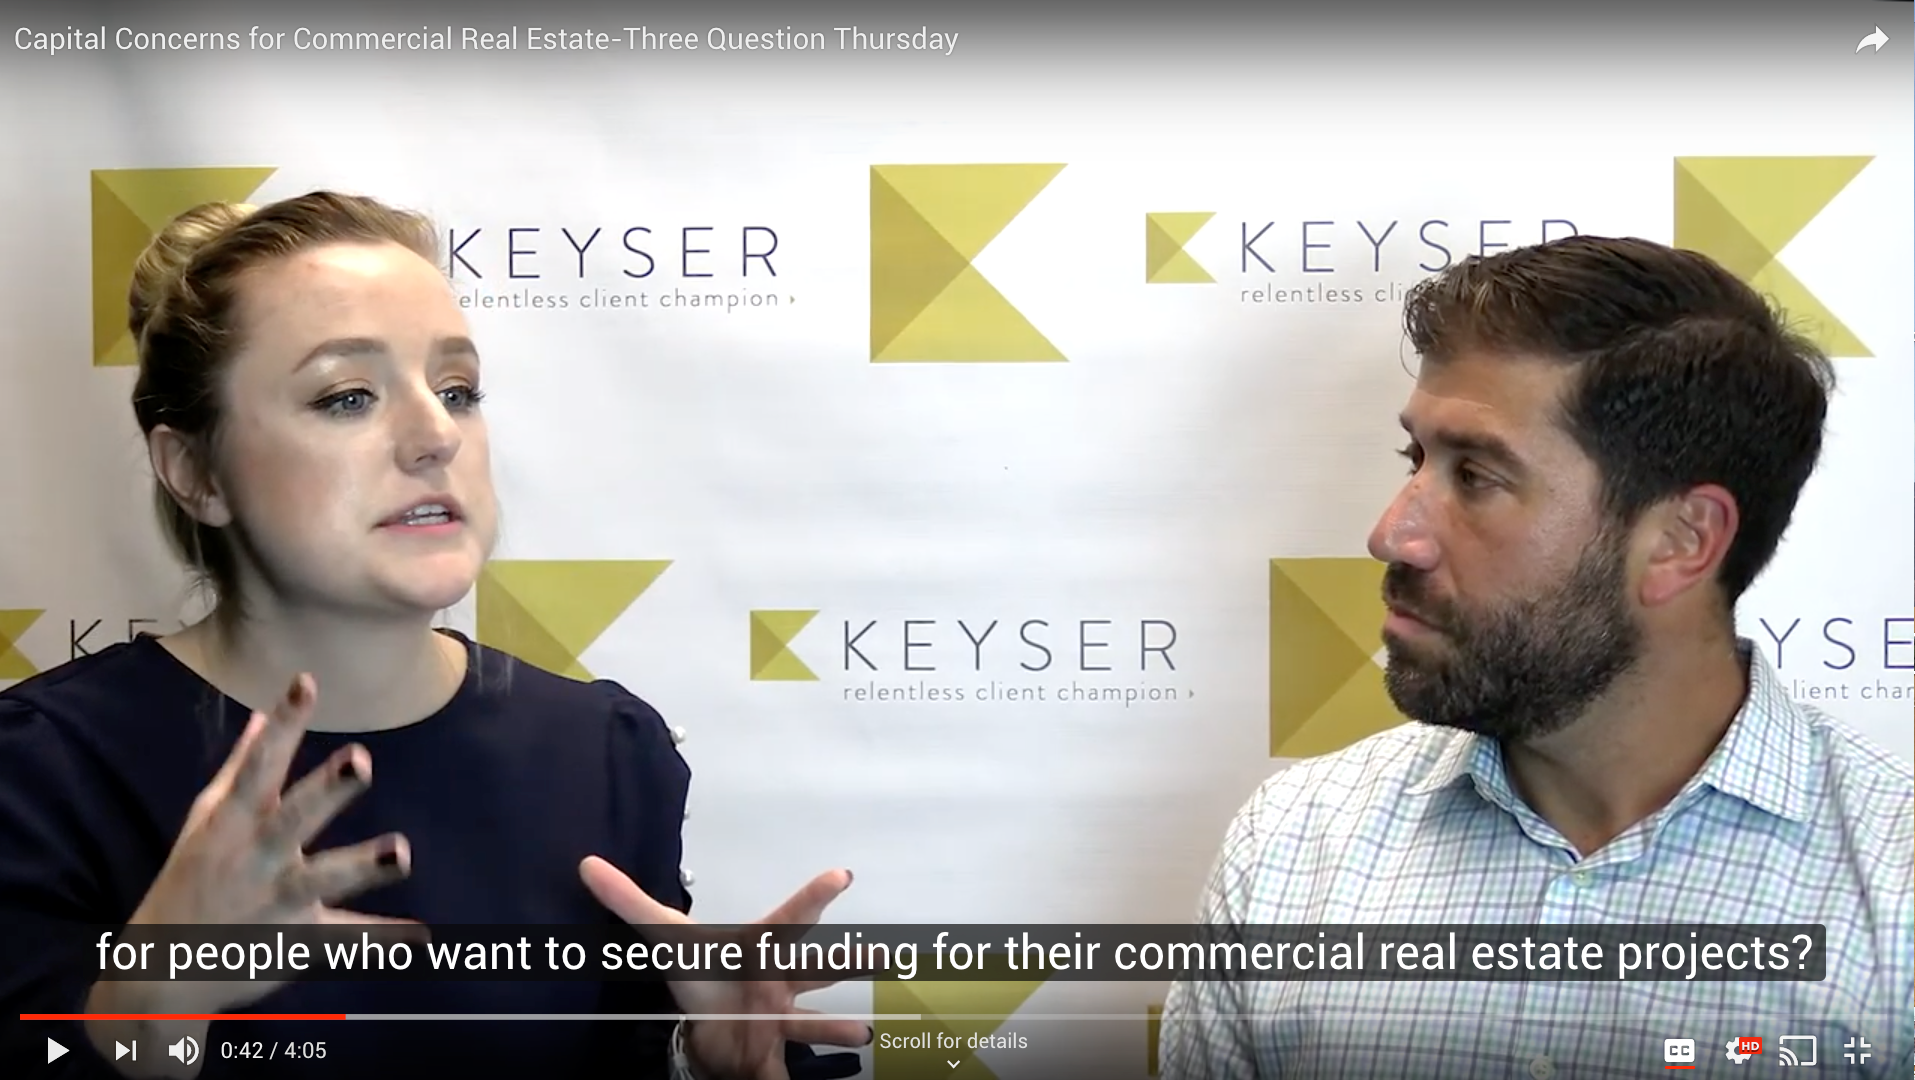 Capital Concerns for Commercial Real Estate